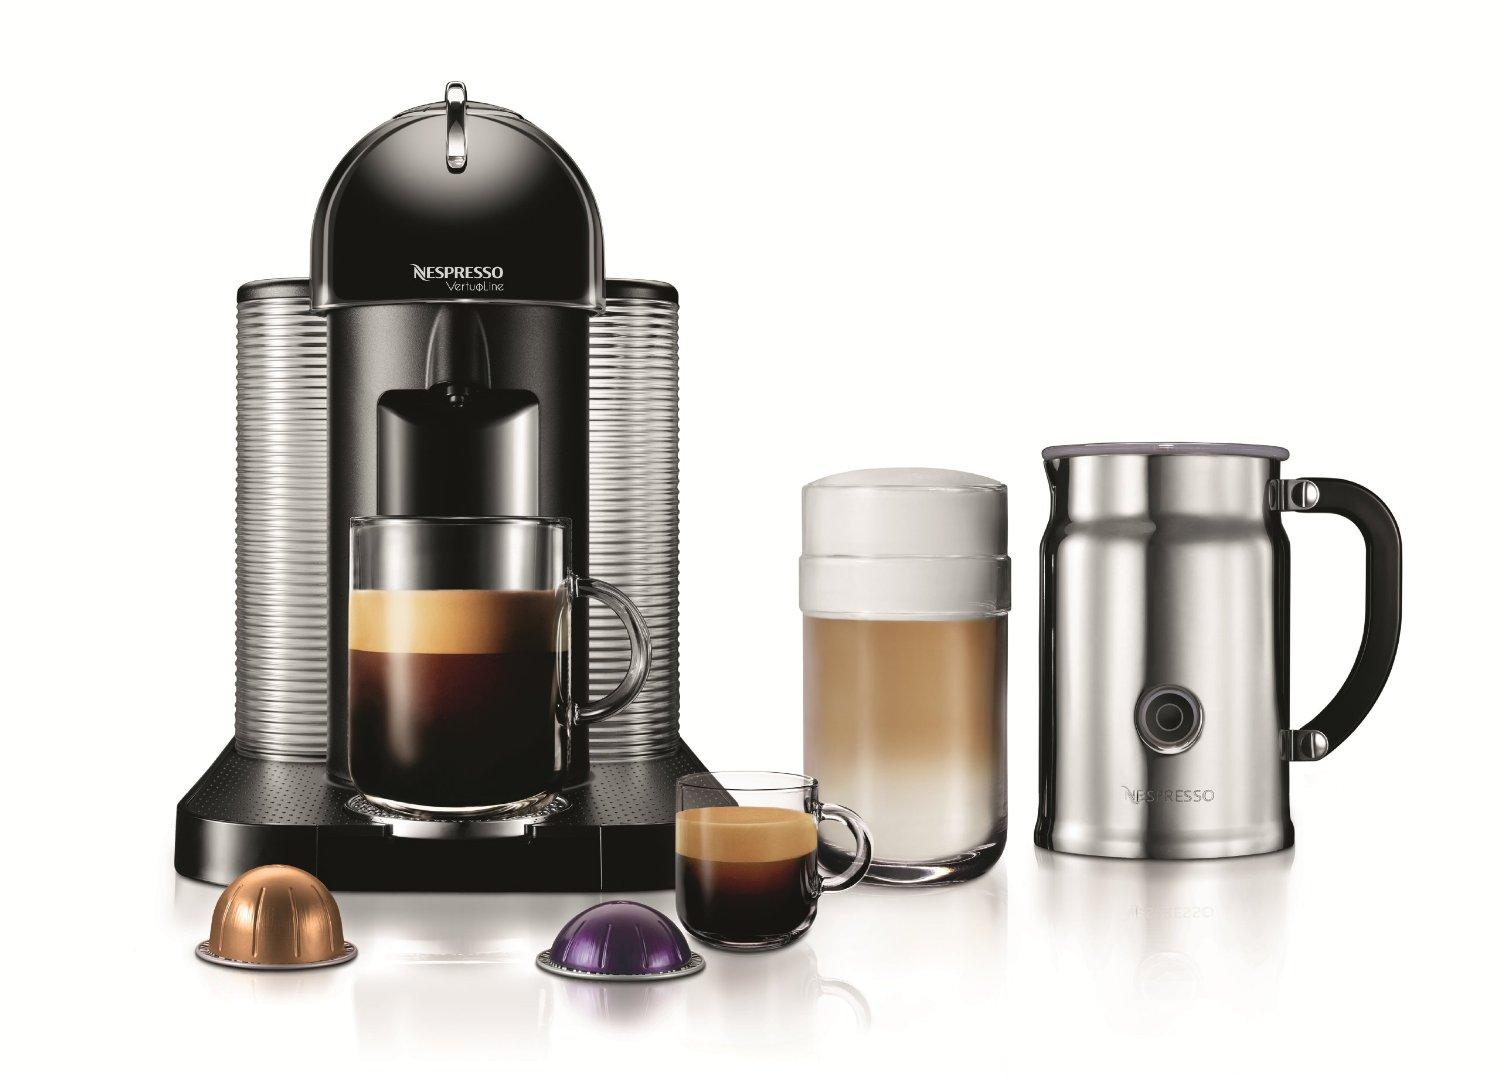 Nespresso Espresso Machine r with Aeroccino Plus Milk Frother,